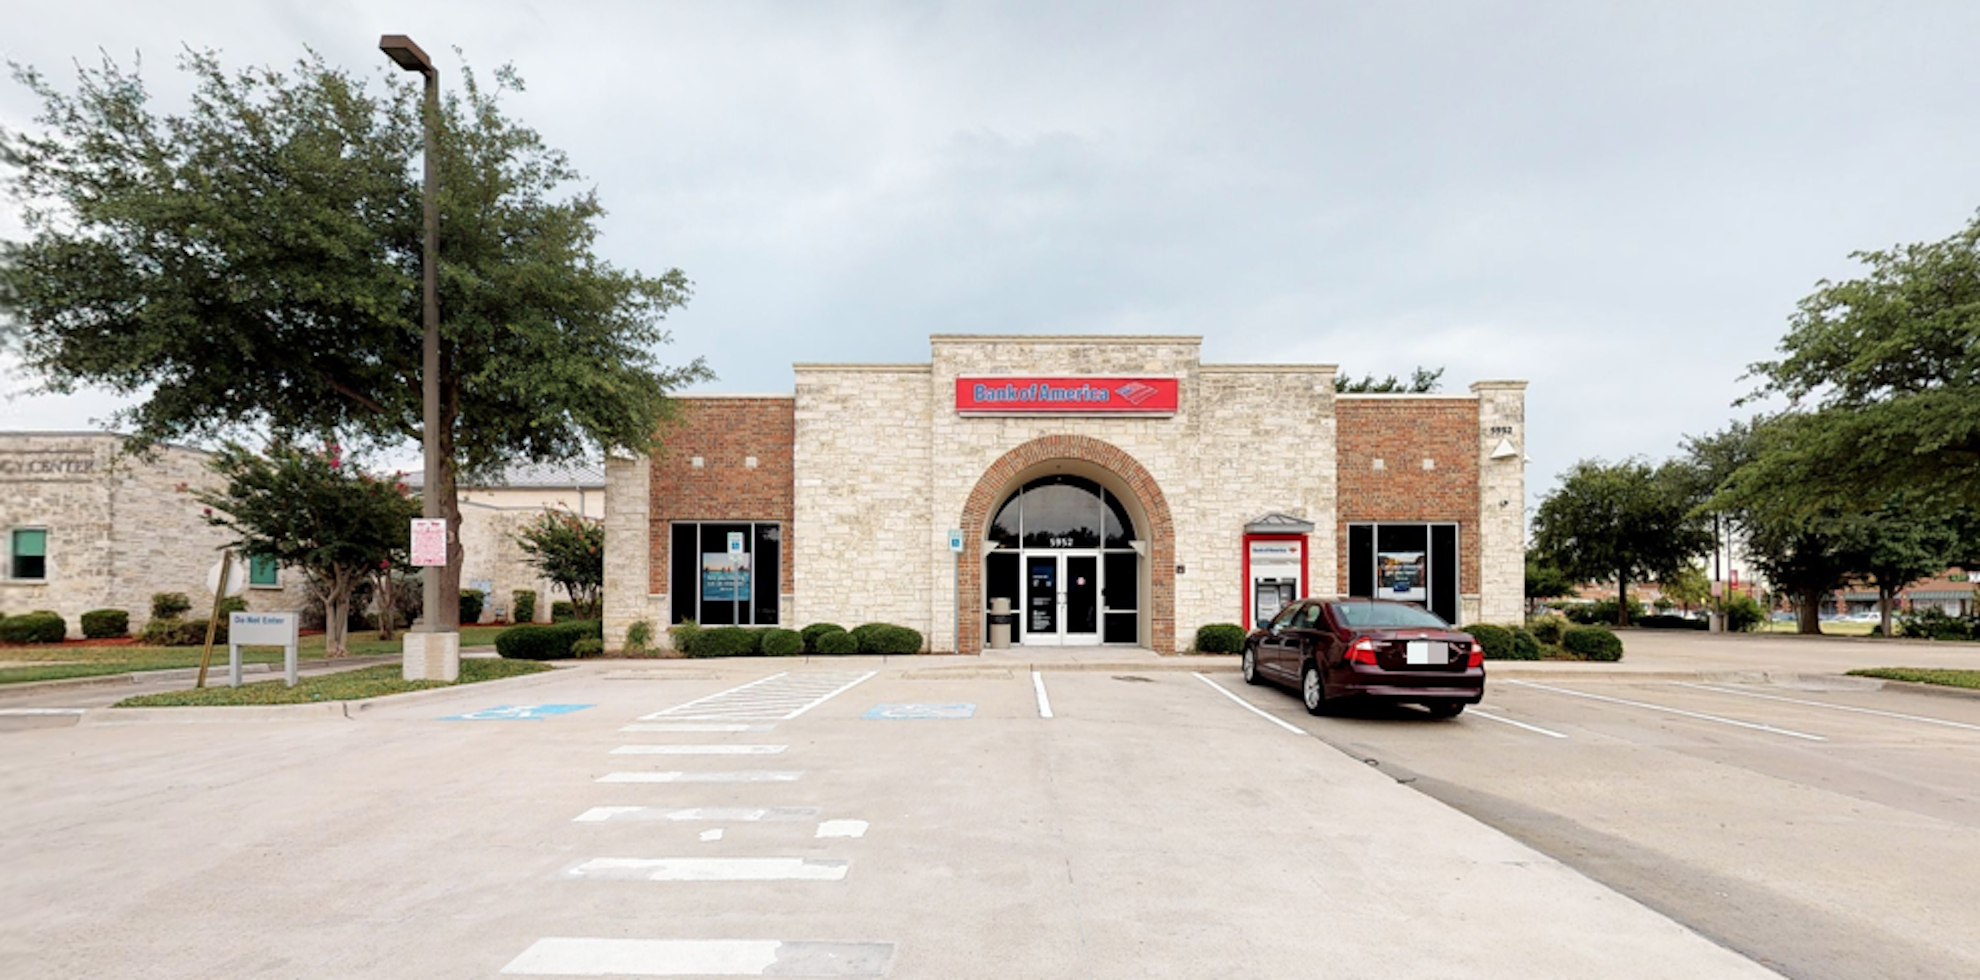 Bank of America financial center with drive-thru ATM   5952 W Parker Rd, Plano, TX 75093